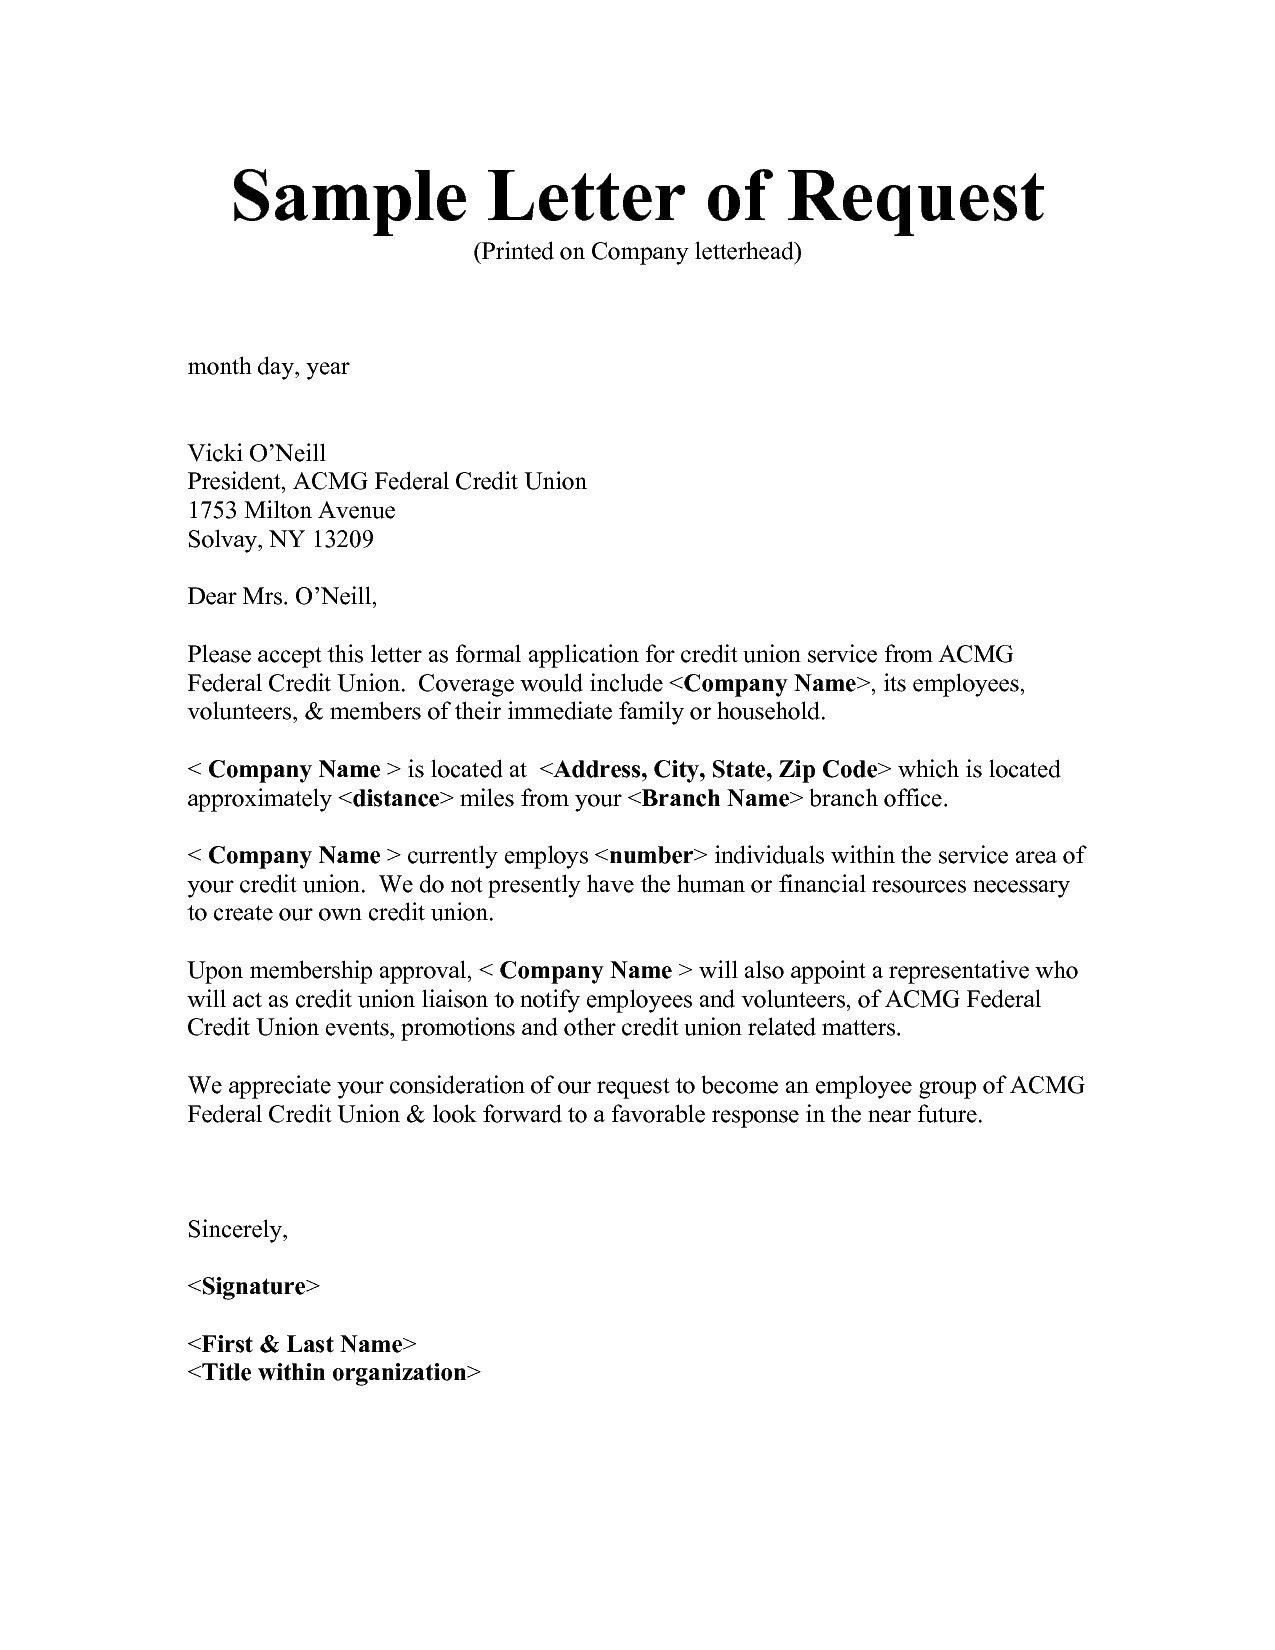 New Letter format for Request Permission Formal letter